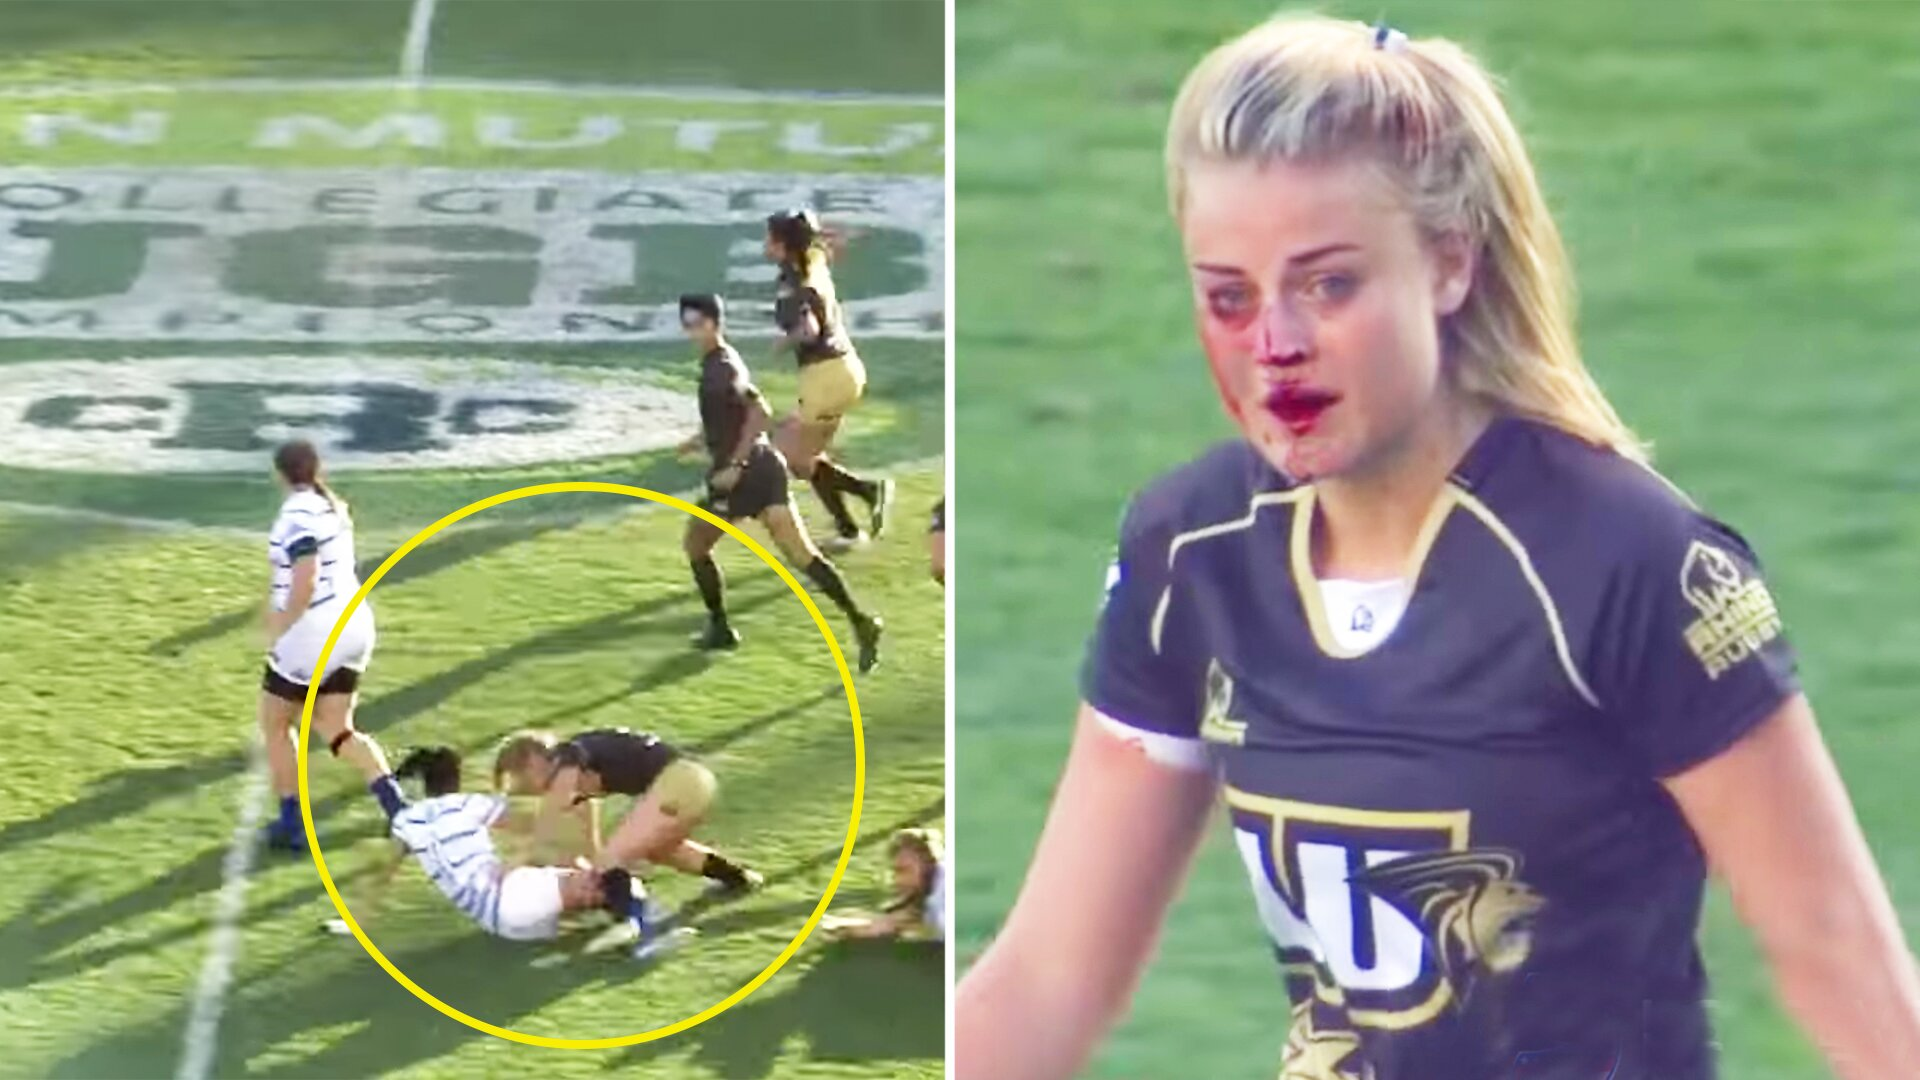 Rugby player breaks nose - then goes on frenzied tackling rampage